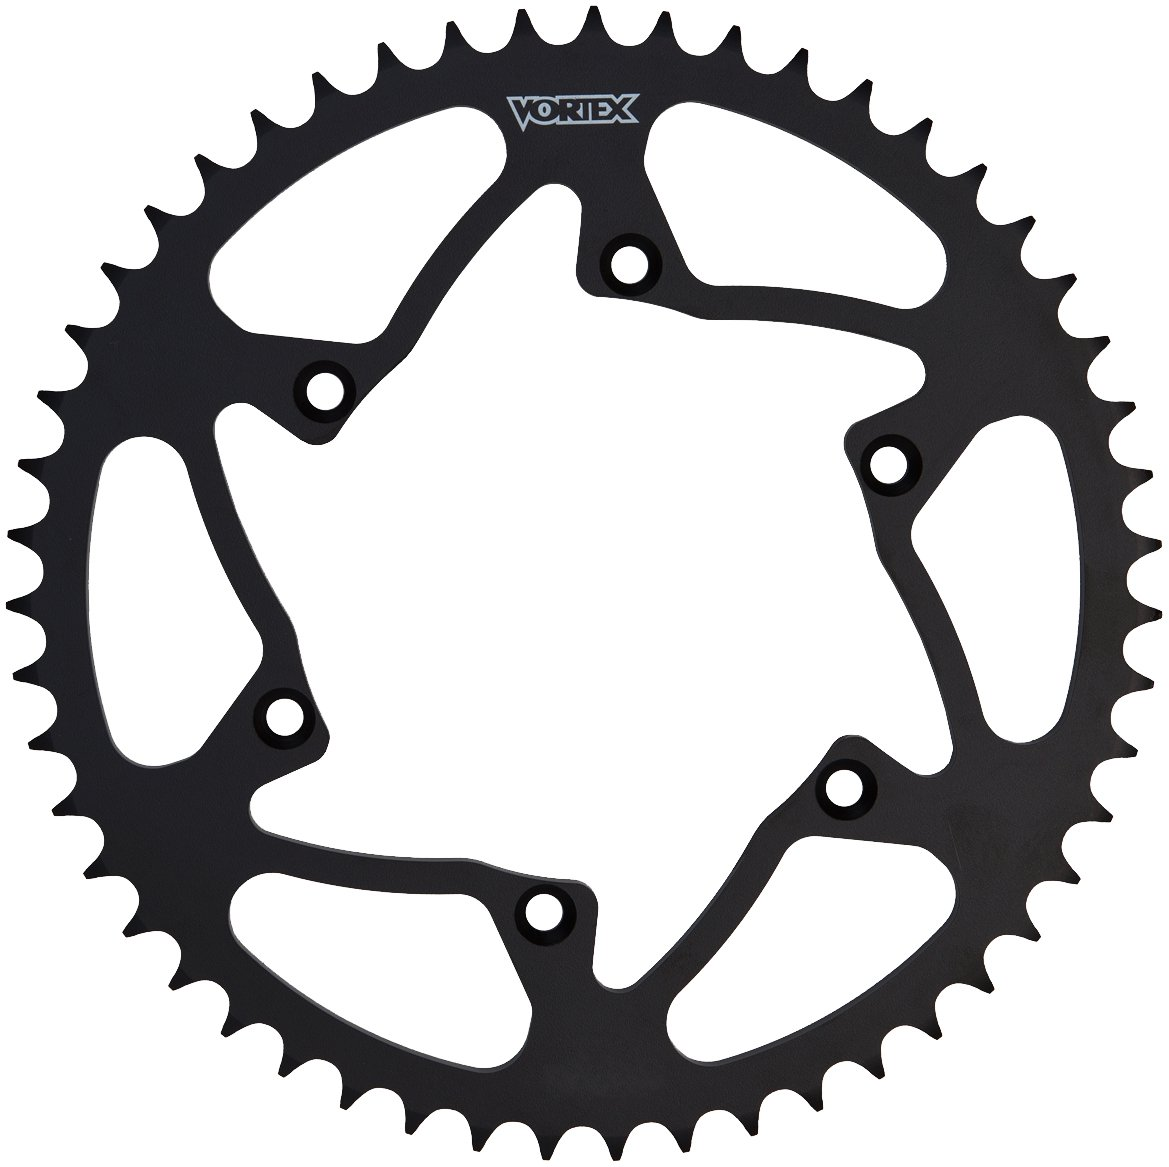 Vortex 422S-51 Black 51-Tooth 520-Pitch Steel Rear Sprocket